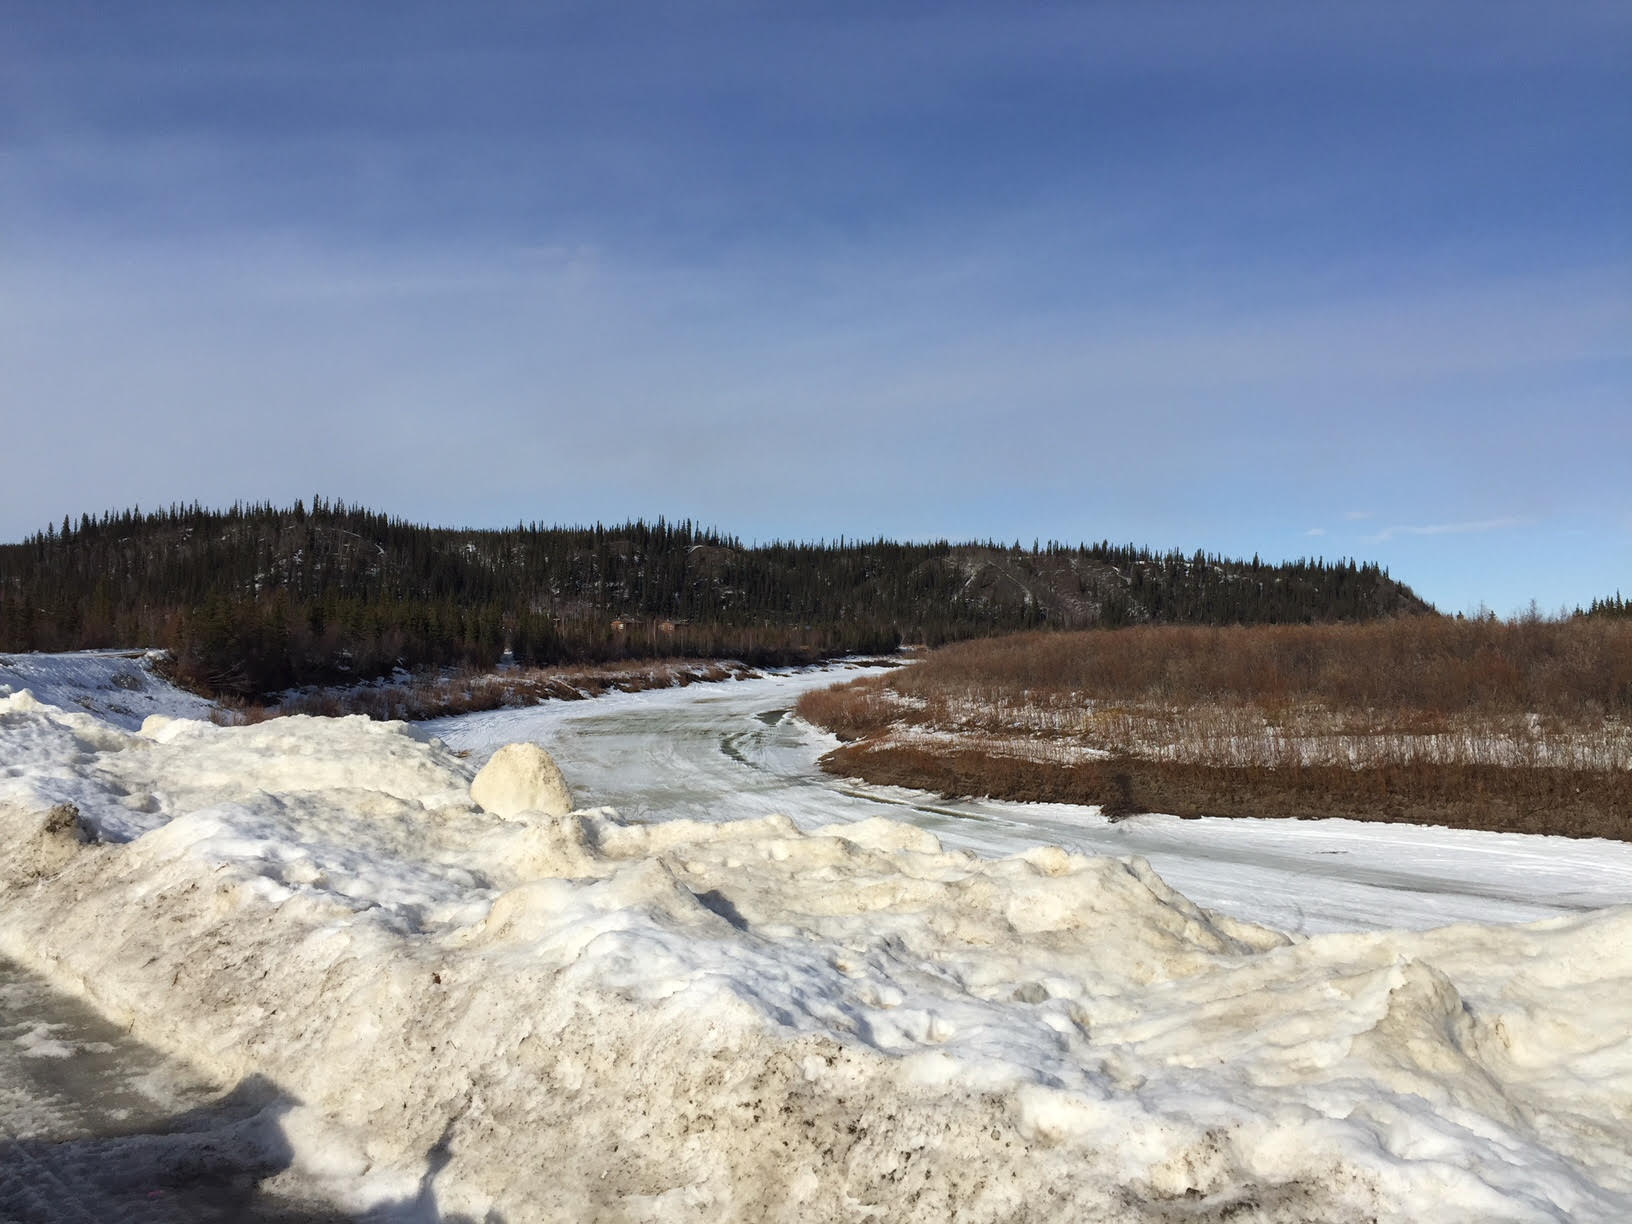 The Slough (an offshoot of the Porcupine River)